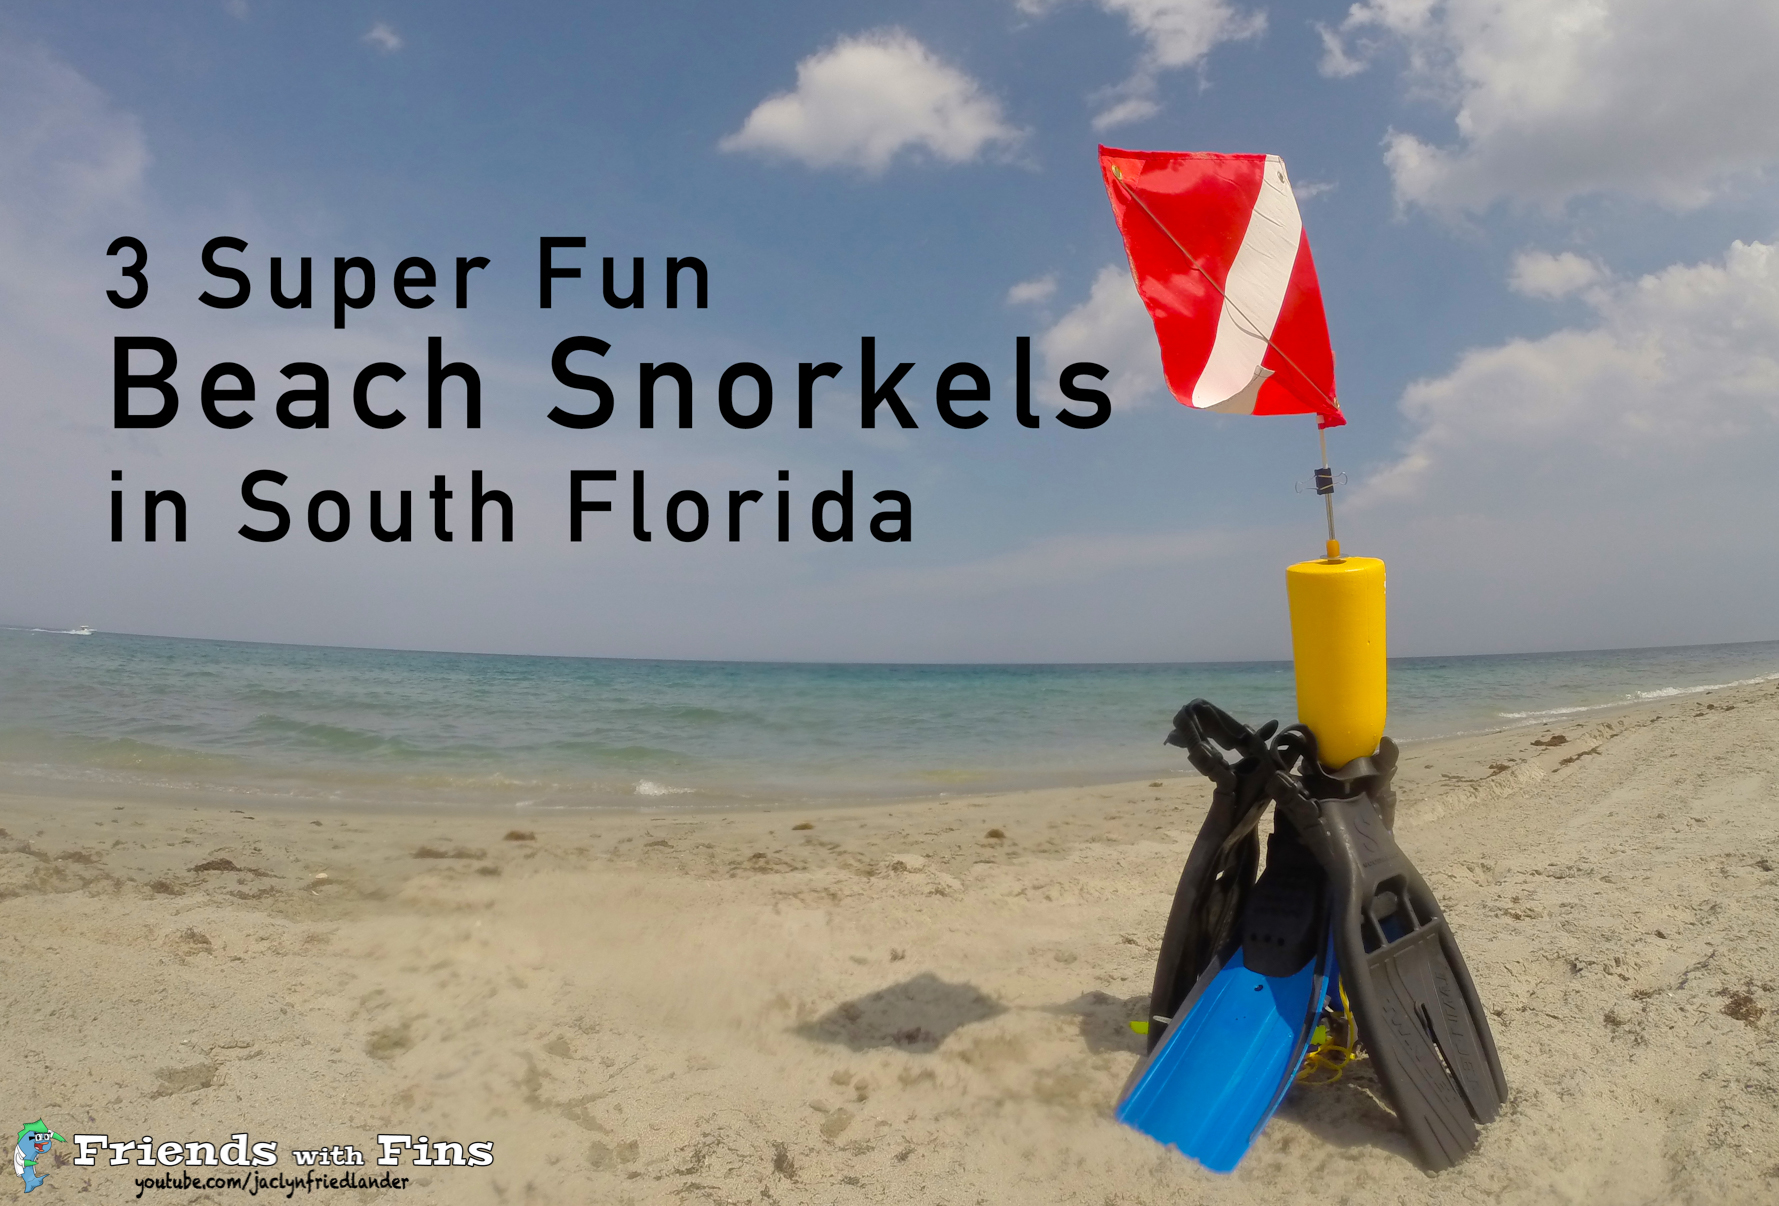 3 Super Fun Beach Snorkels in South Florida